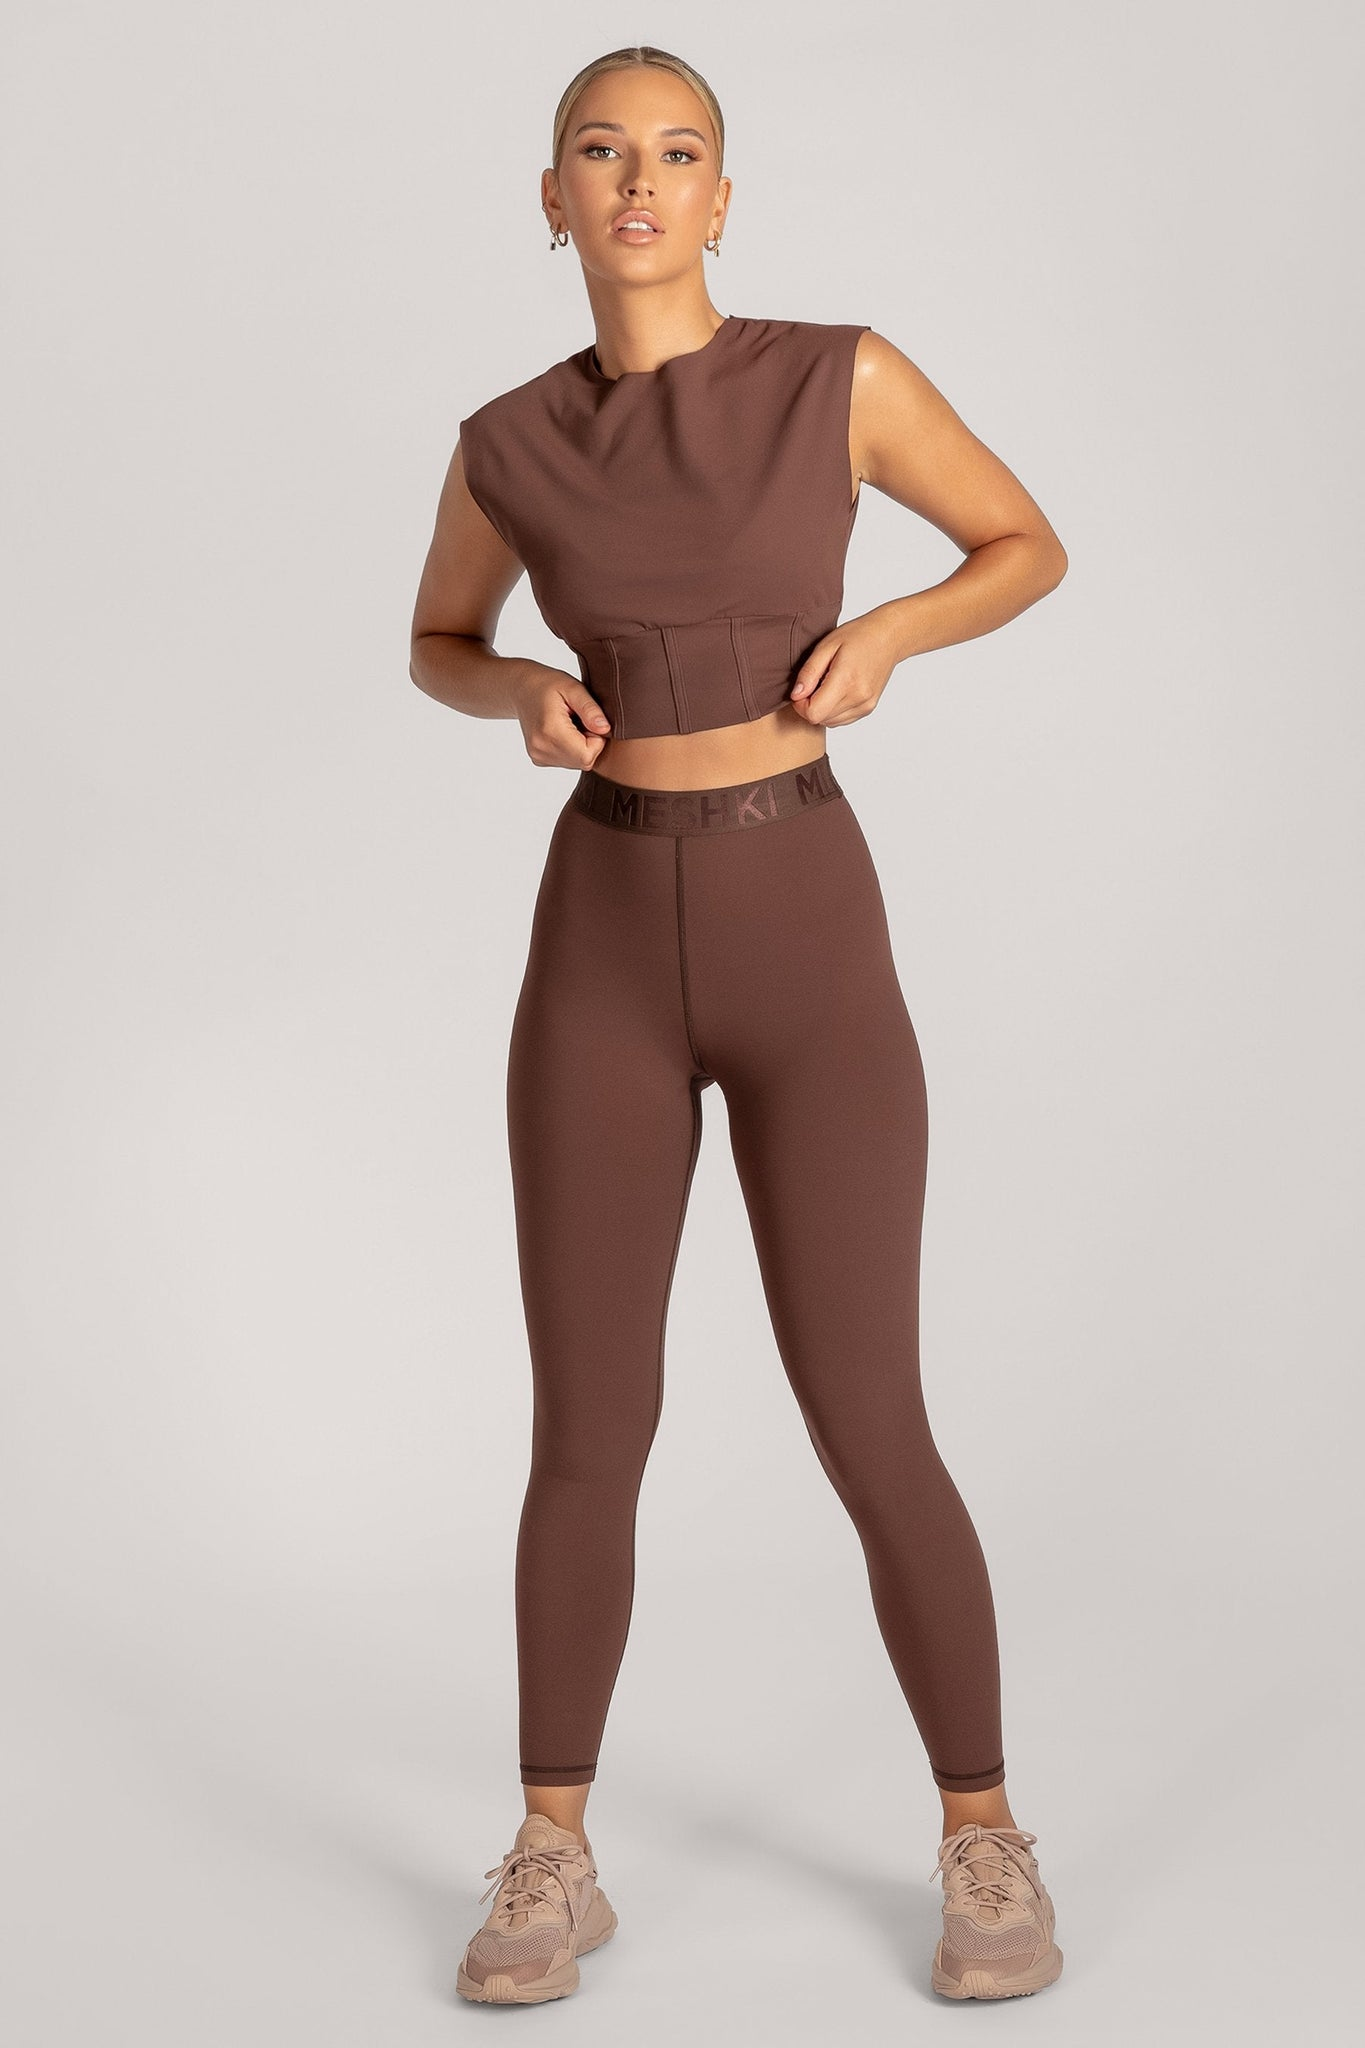 Hestia Panelled Sleeveless Crop Top - Chocolate - MESHKI